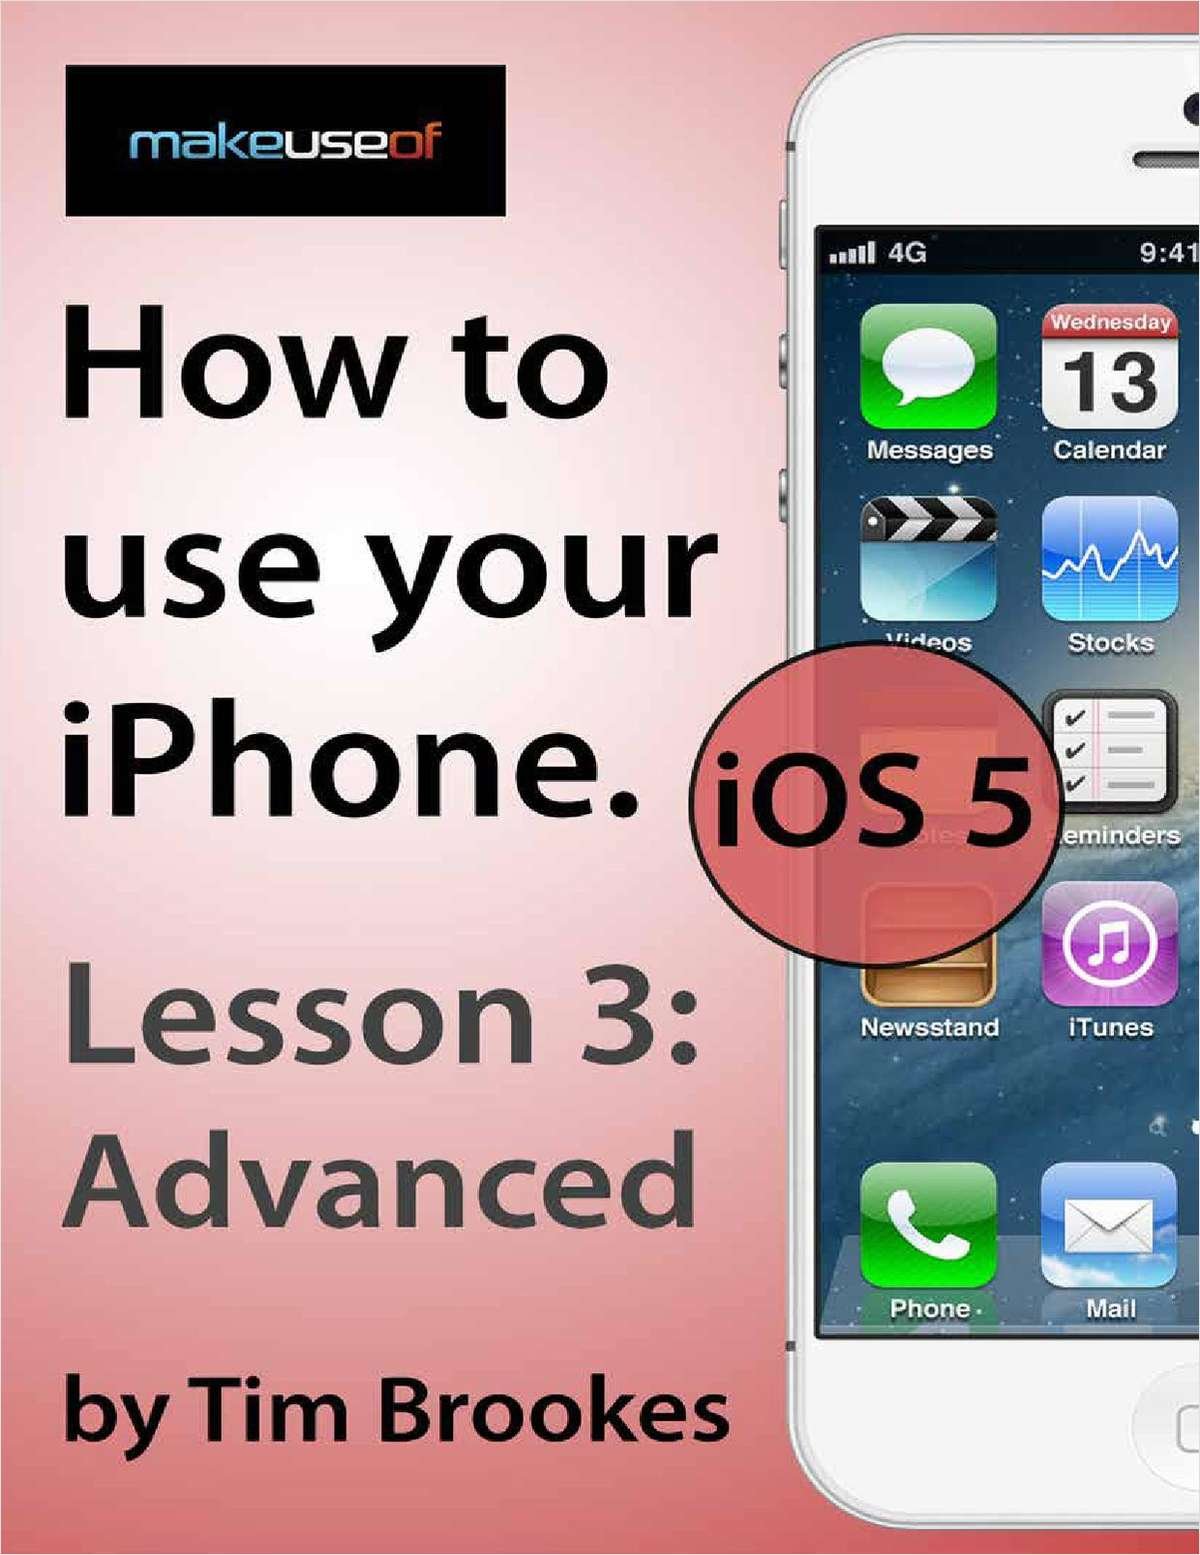 How To Use Your iPhone iOS5: Lesson 3 Advanced